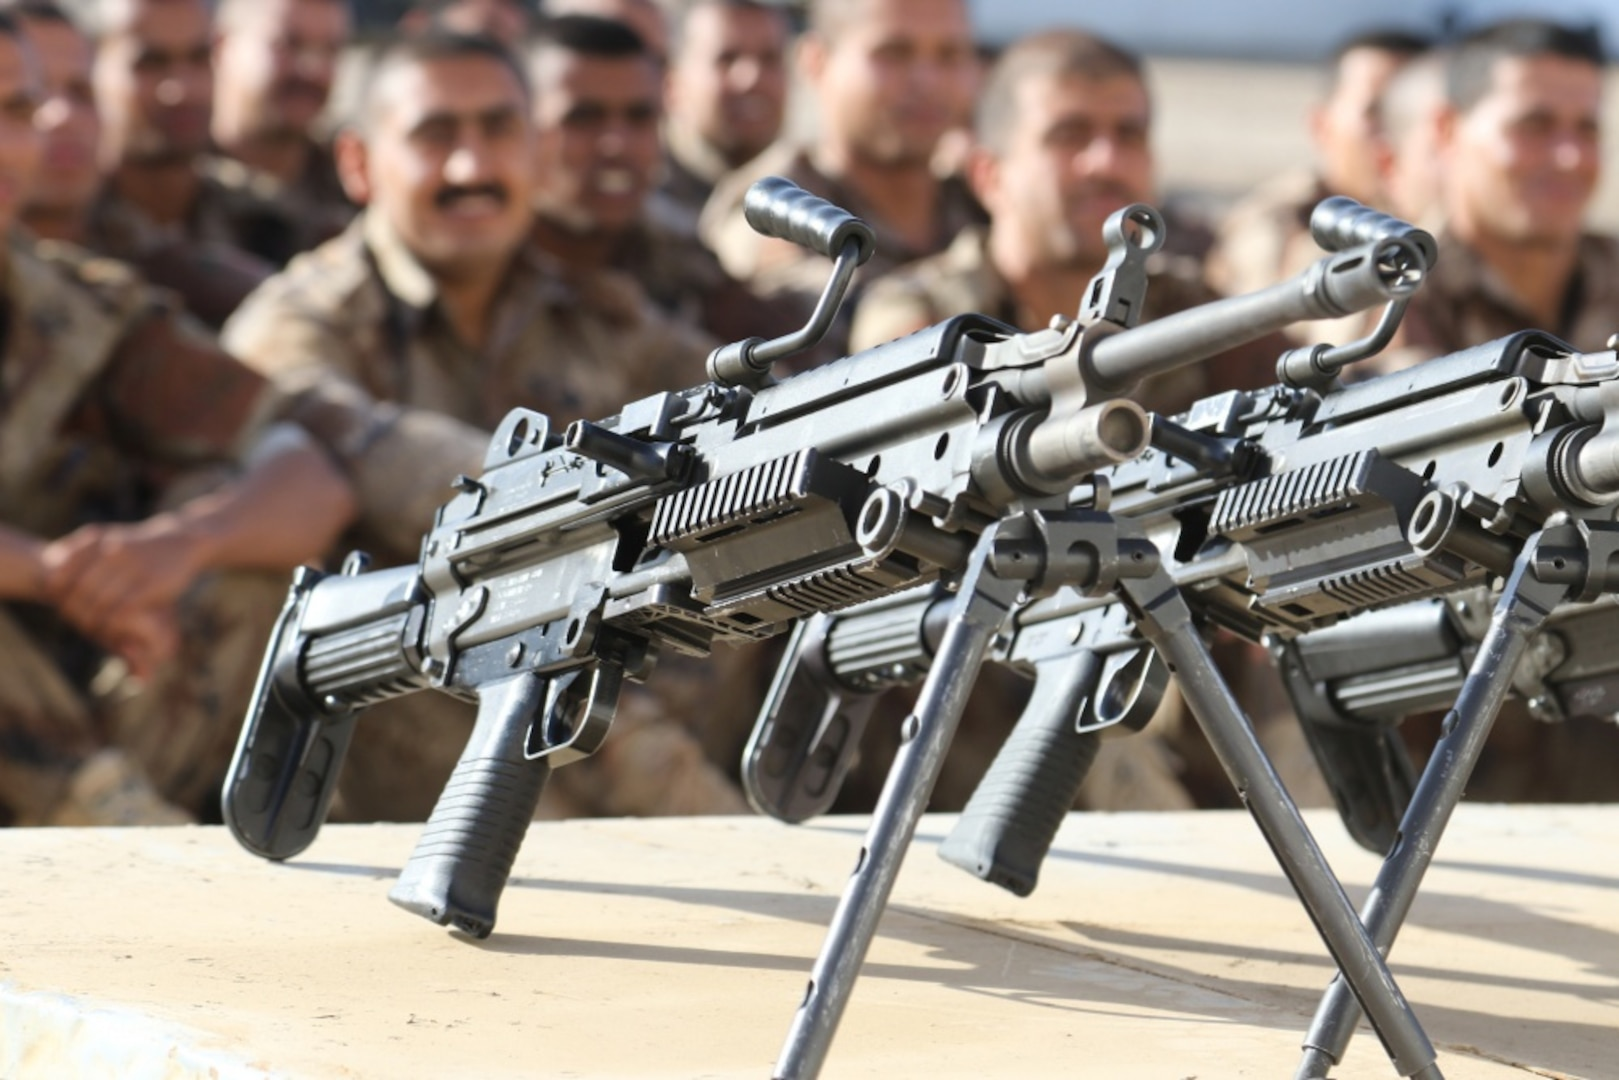 Members of Iraq's Counter-Terrorism Service prepare for their first class on heavy weapons in 2nd School at Baghdad Diplomatic Support Center, Iraq.